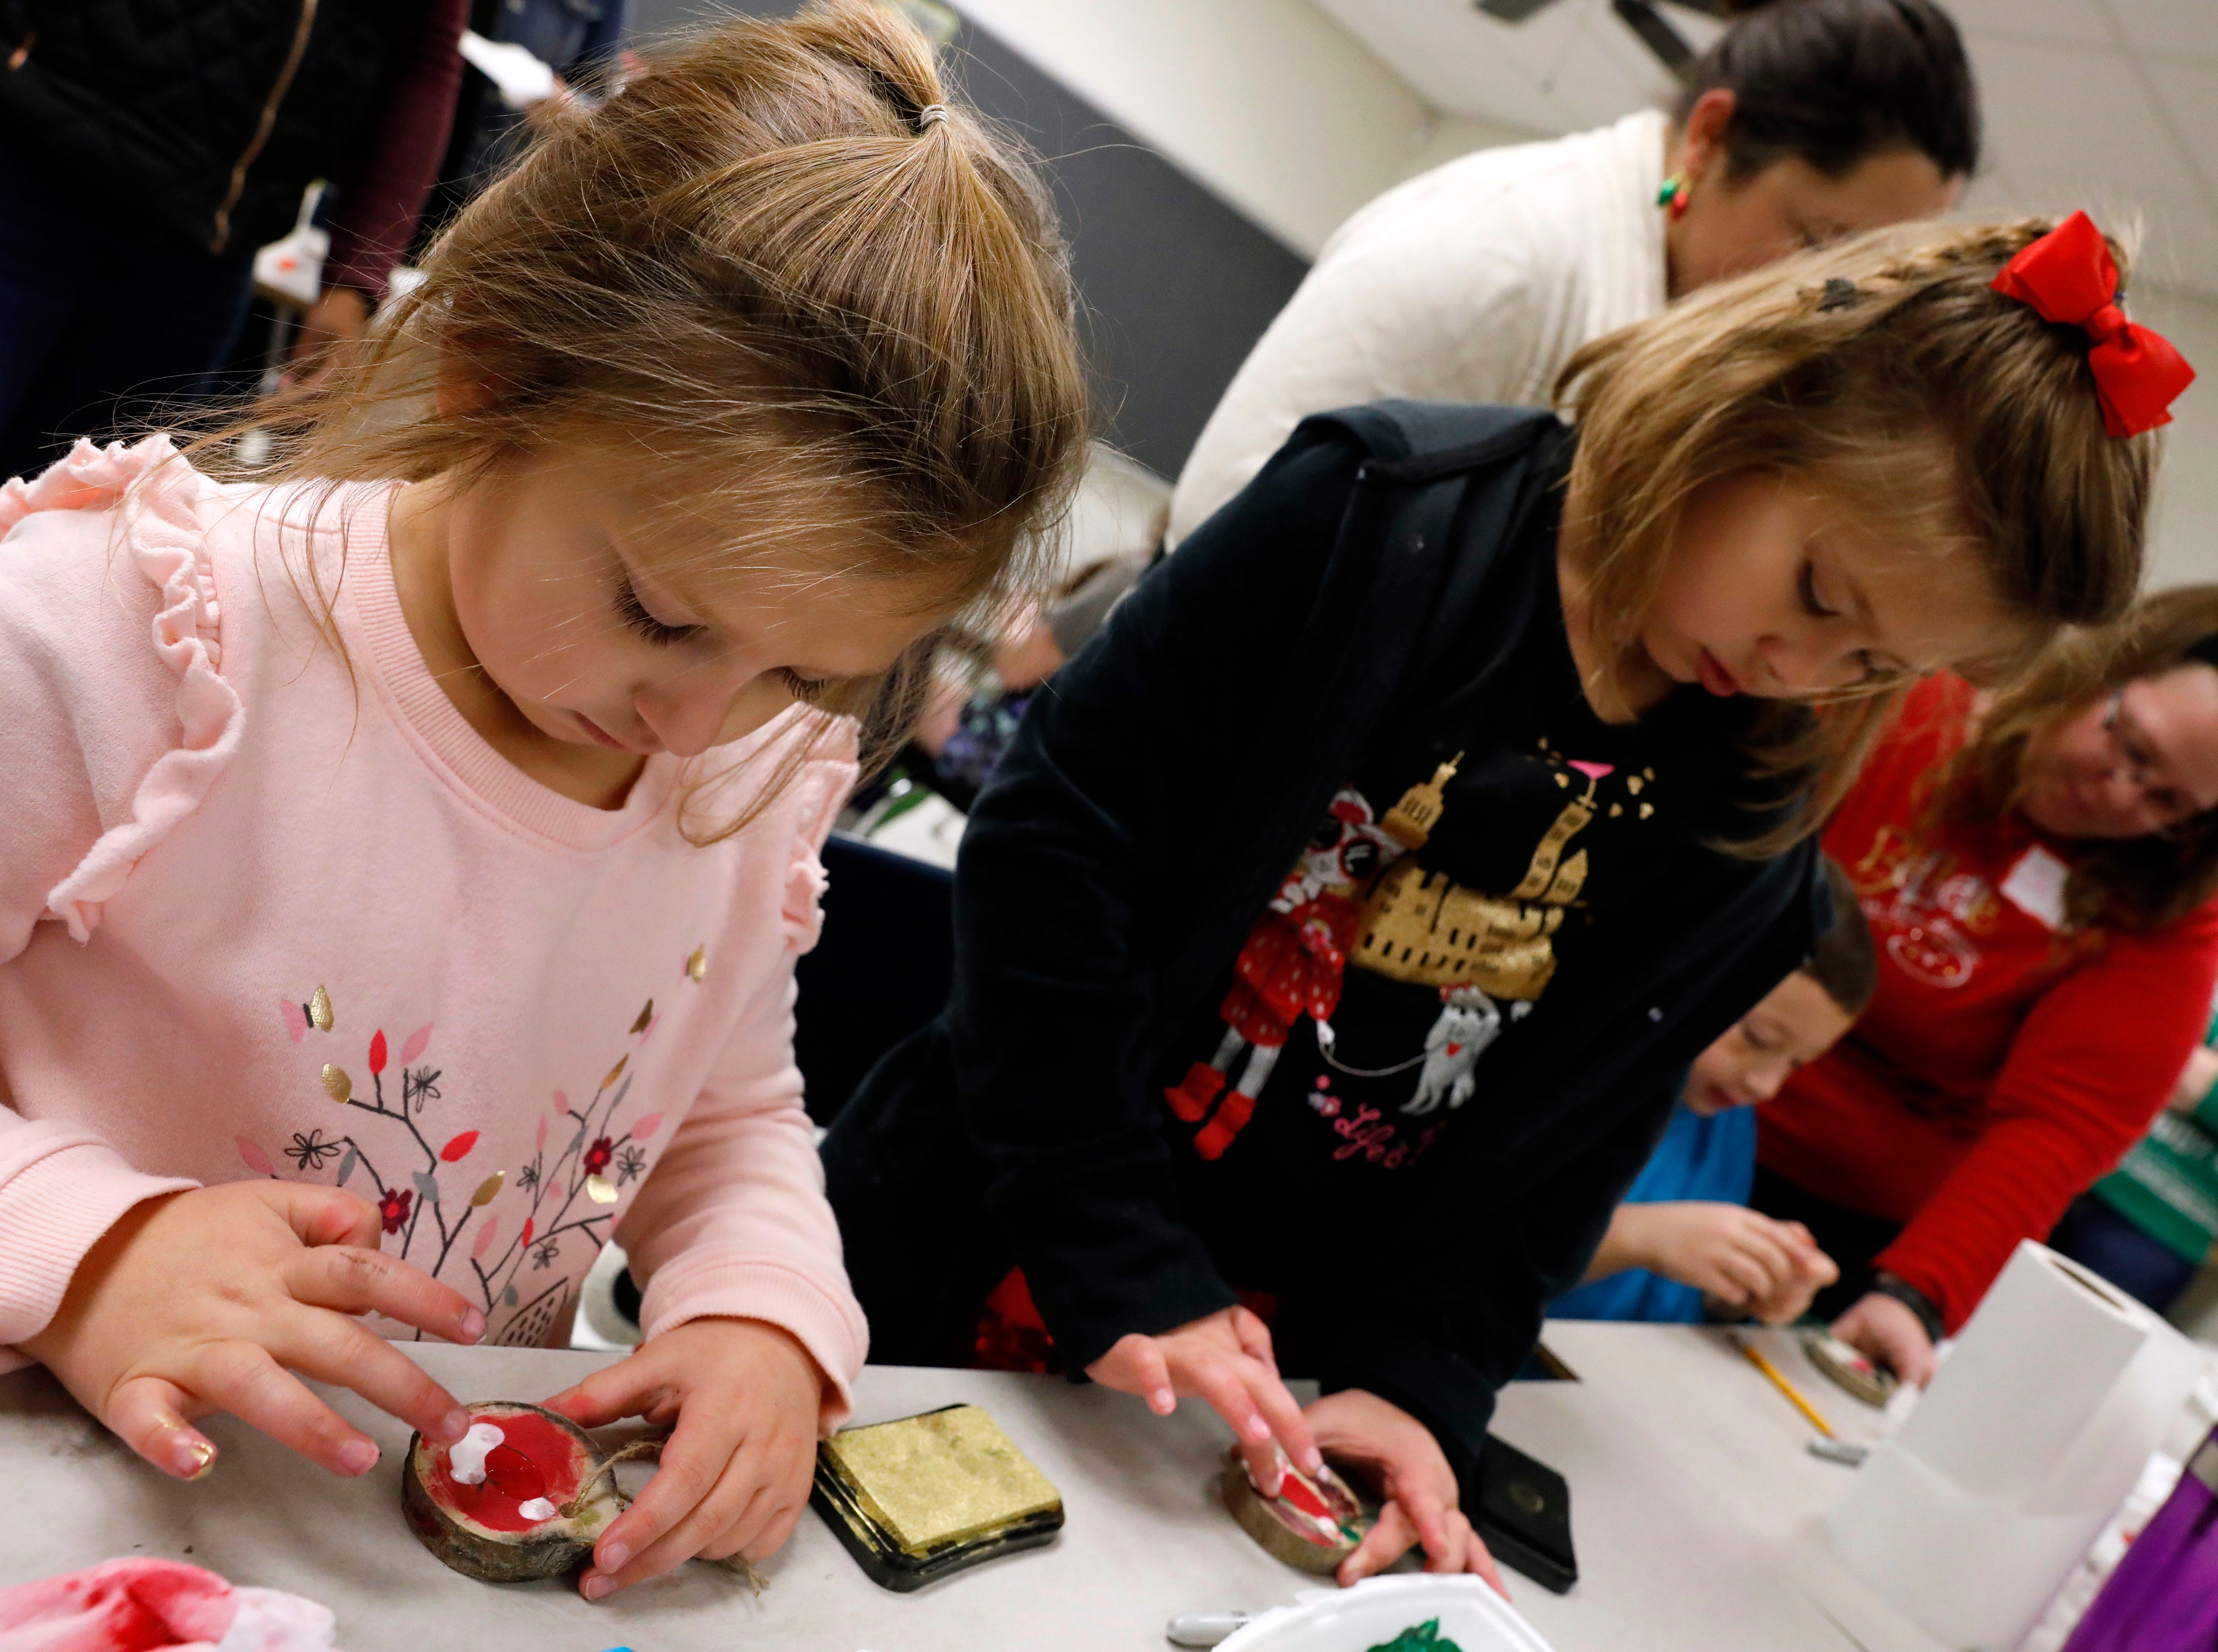 Alexis Beavers, 7, left, and Rosealeigh Marteney, 6, finger paint wooden Christmas ornaments Saturday afternoon, Dec. 1, 2018, during the annual Gift of Time free community event at Lancaster High School in Lancaster.